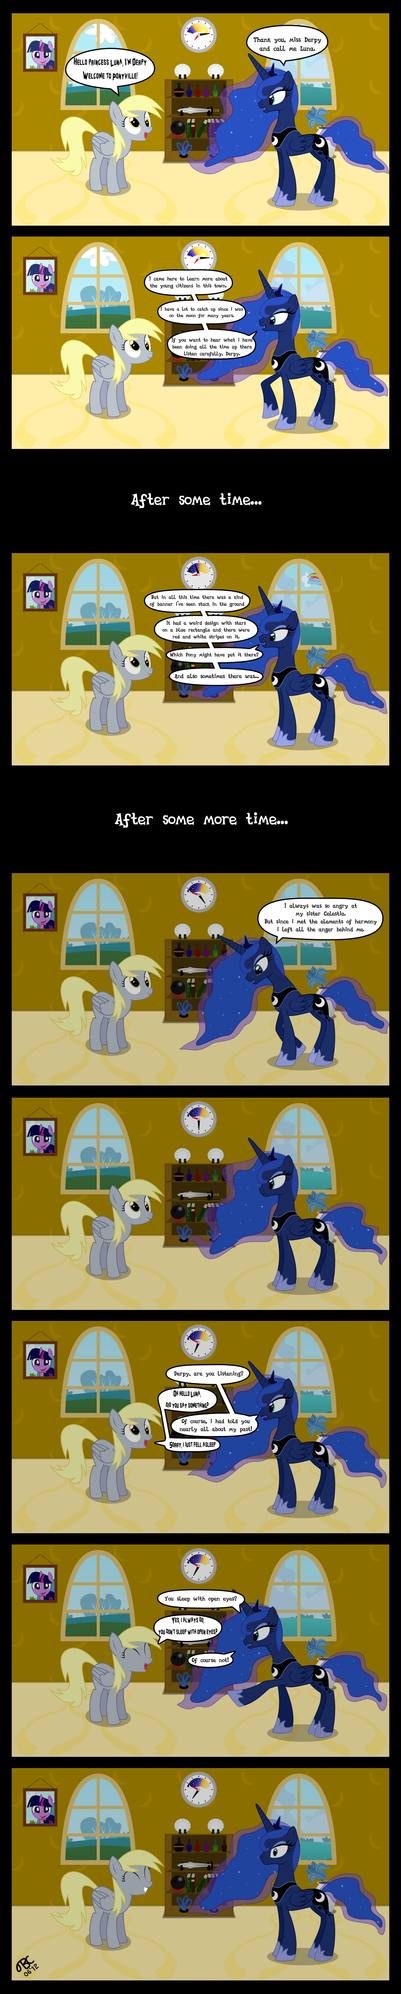 Derpy meets Luna in her new house (comic version) by TBCroco